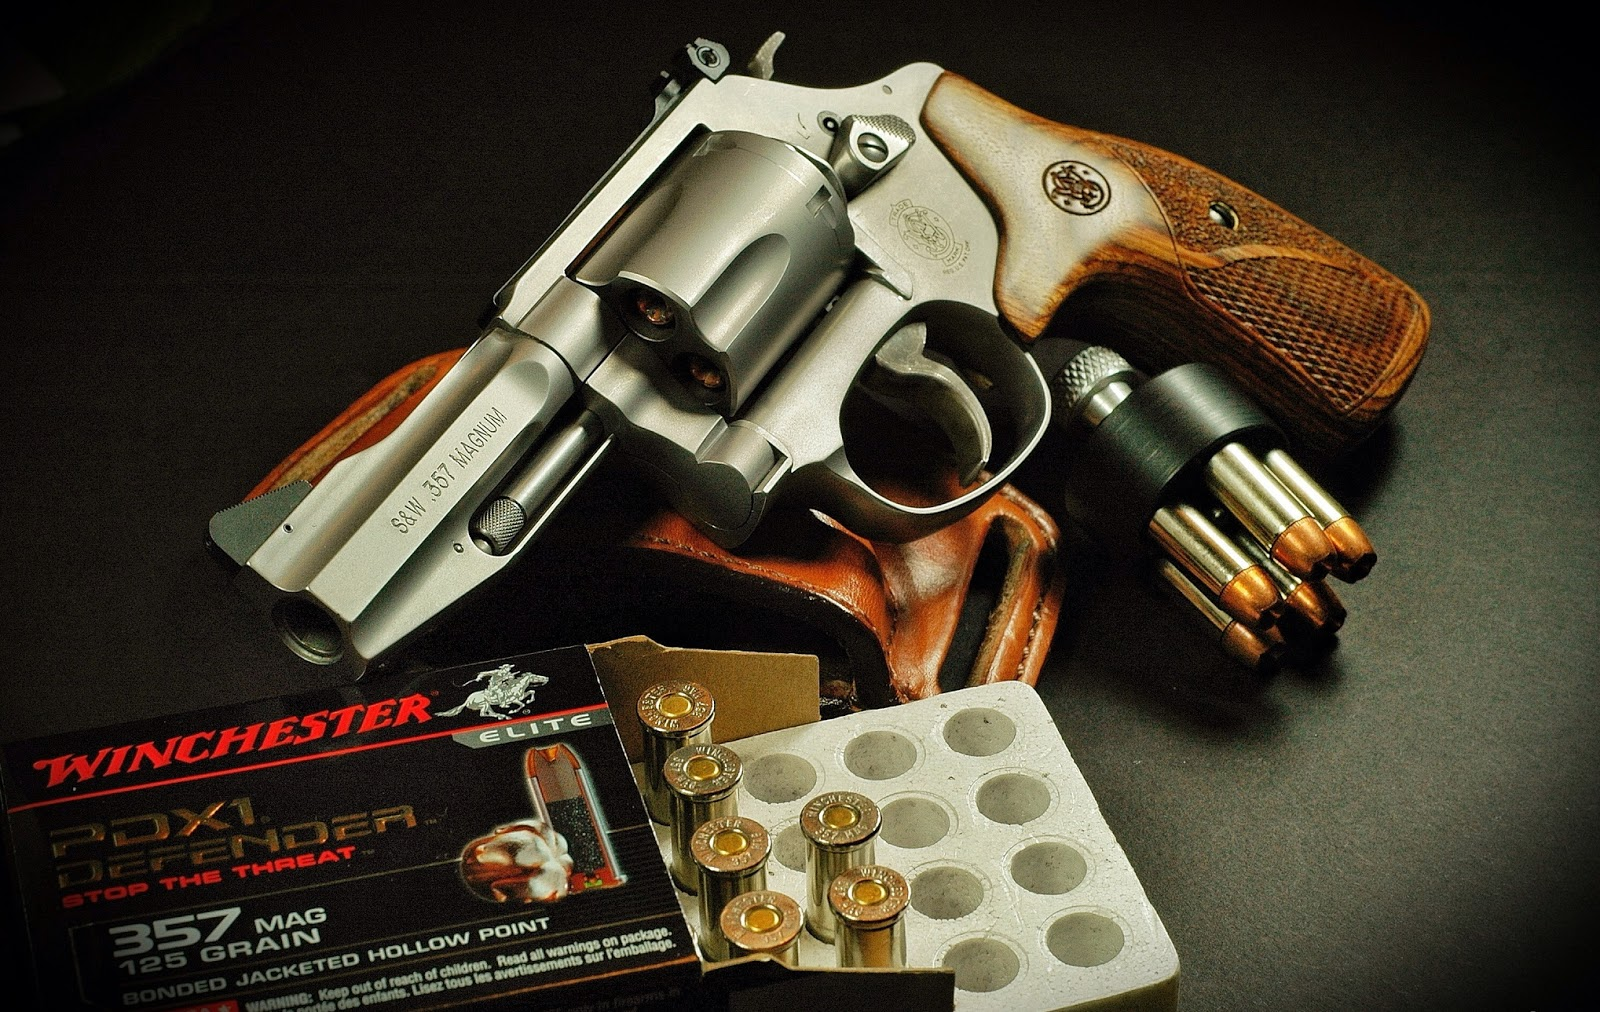 smith and wesson model 60 pro jpg smith and wesson 1600x1012